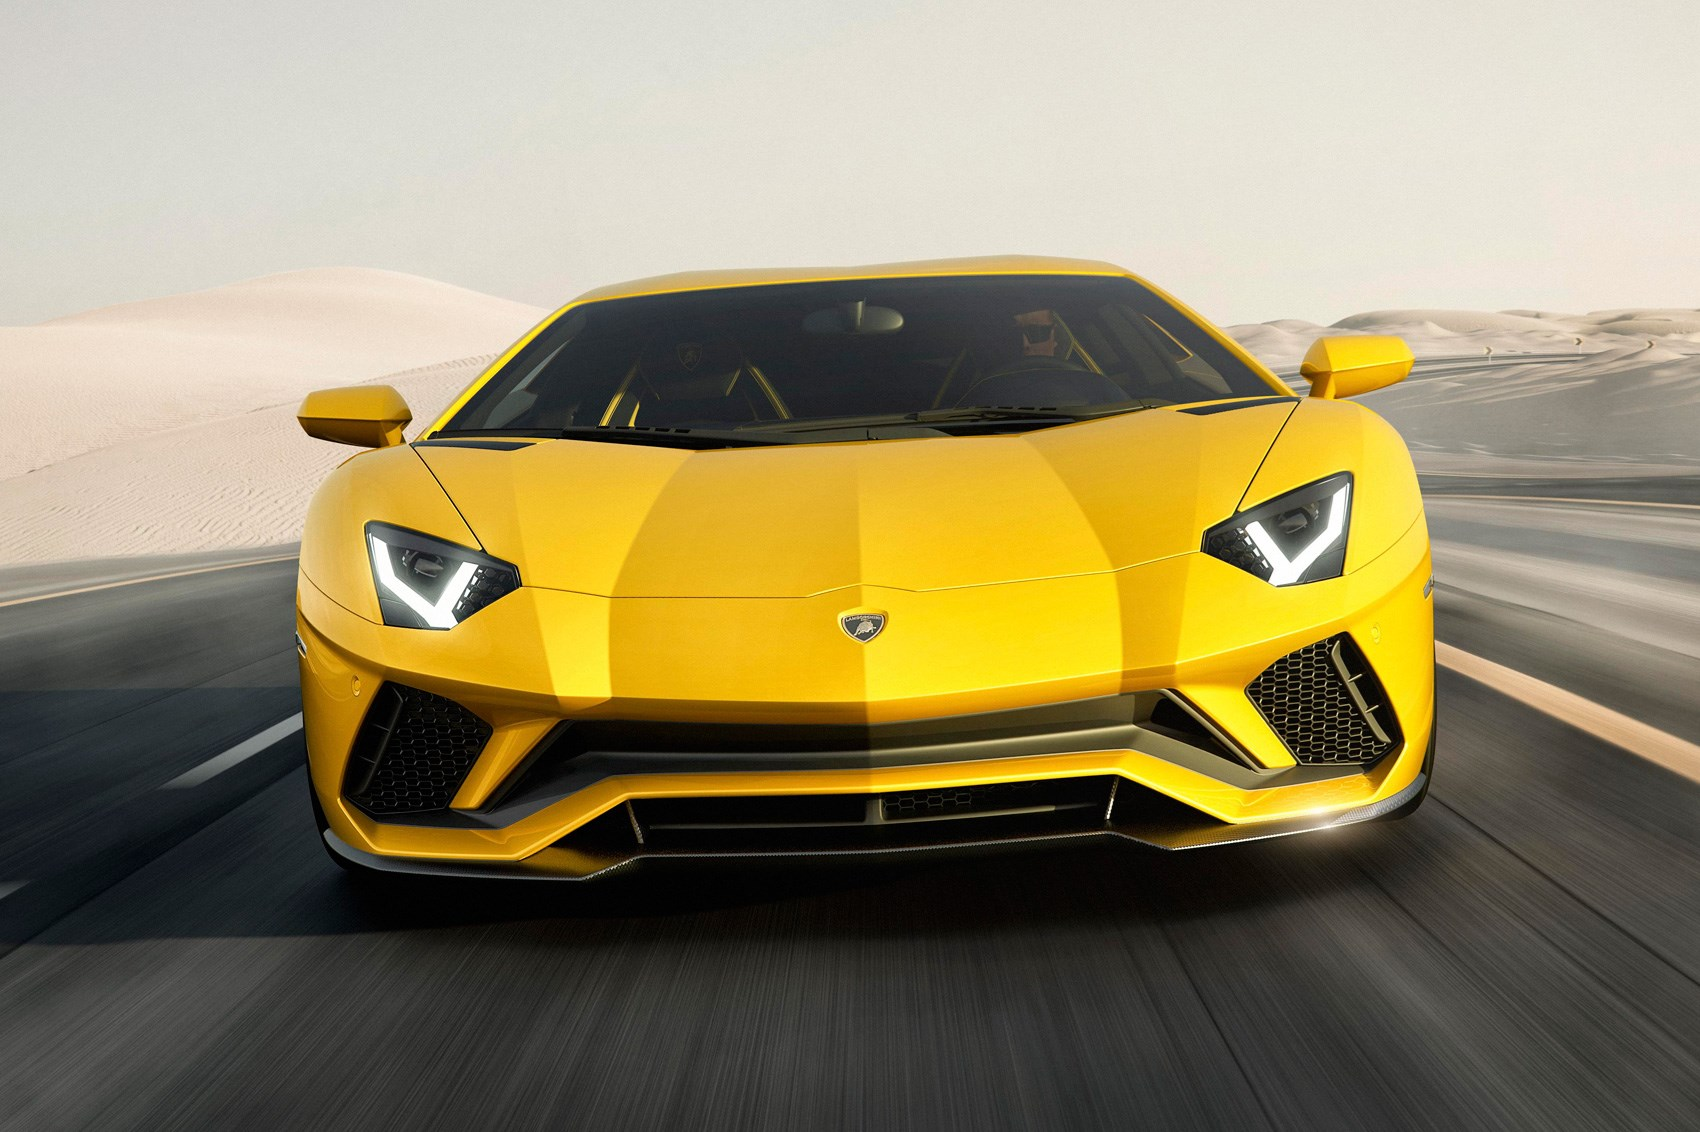 more info on lamborghi...